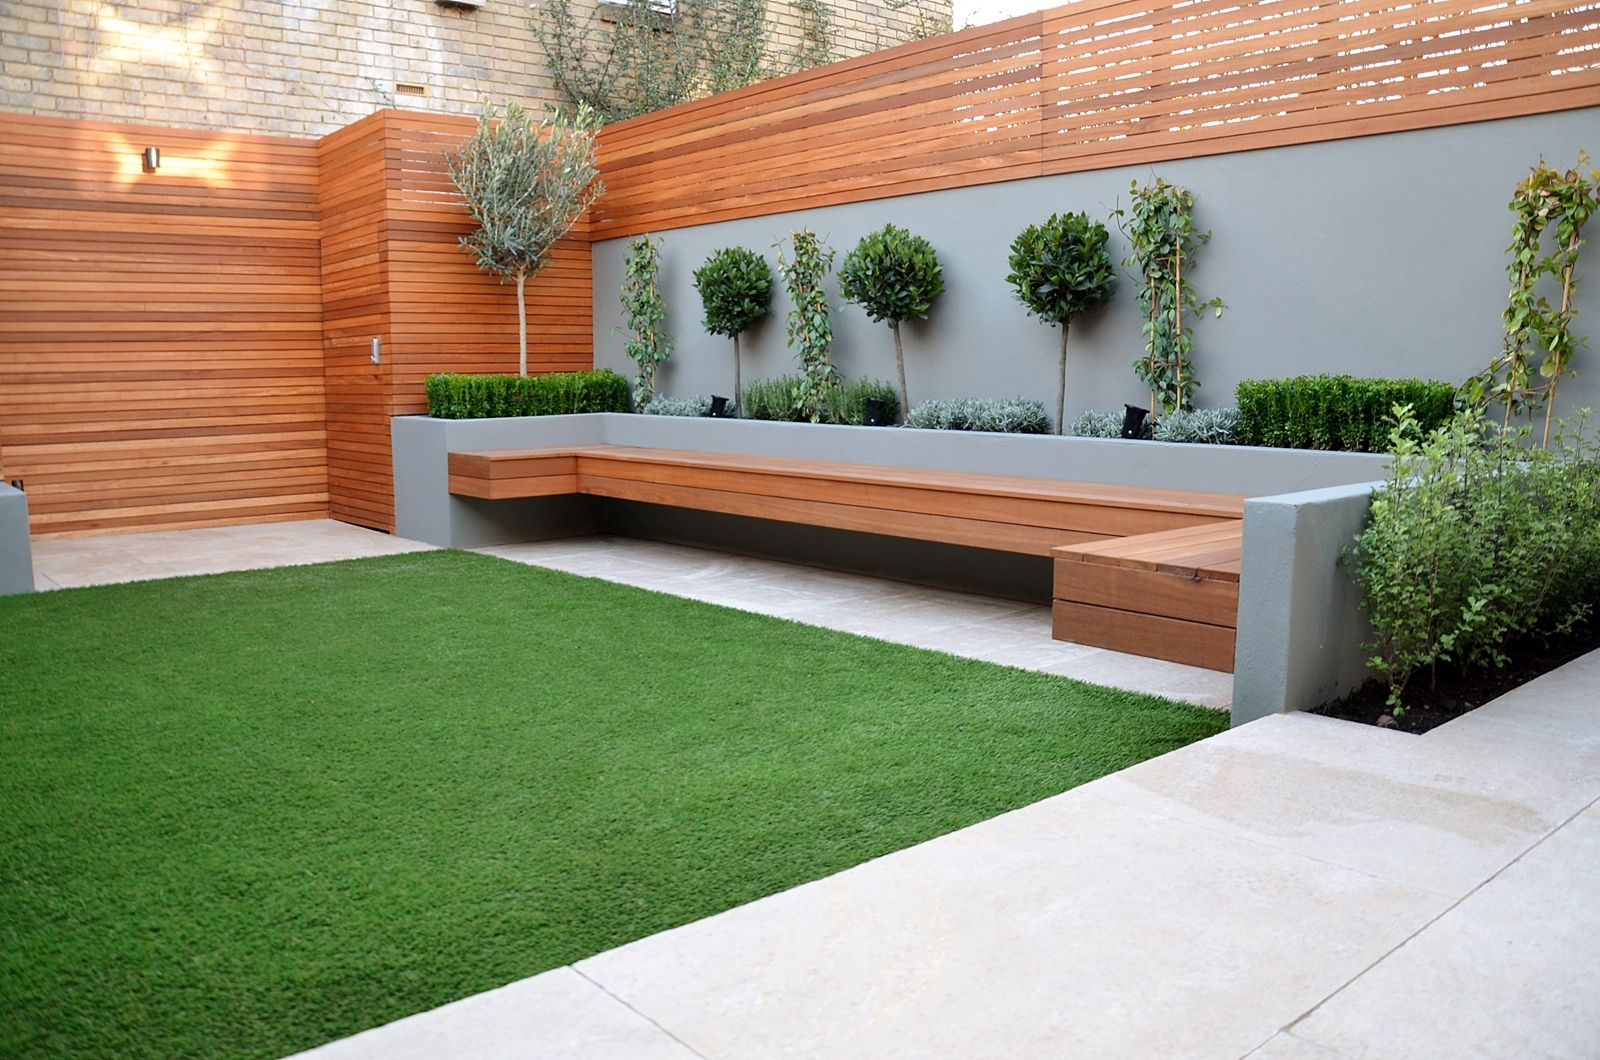 Modern low maintenance garden design clapham london for Small modern house garden design